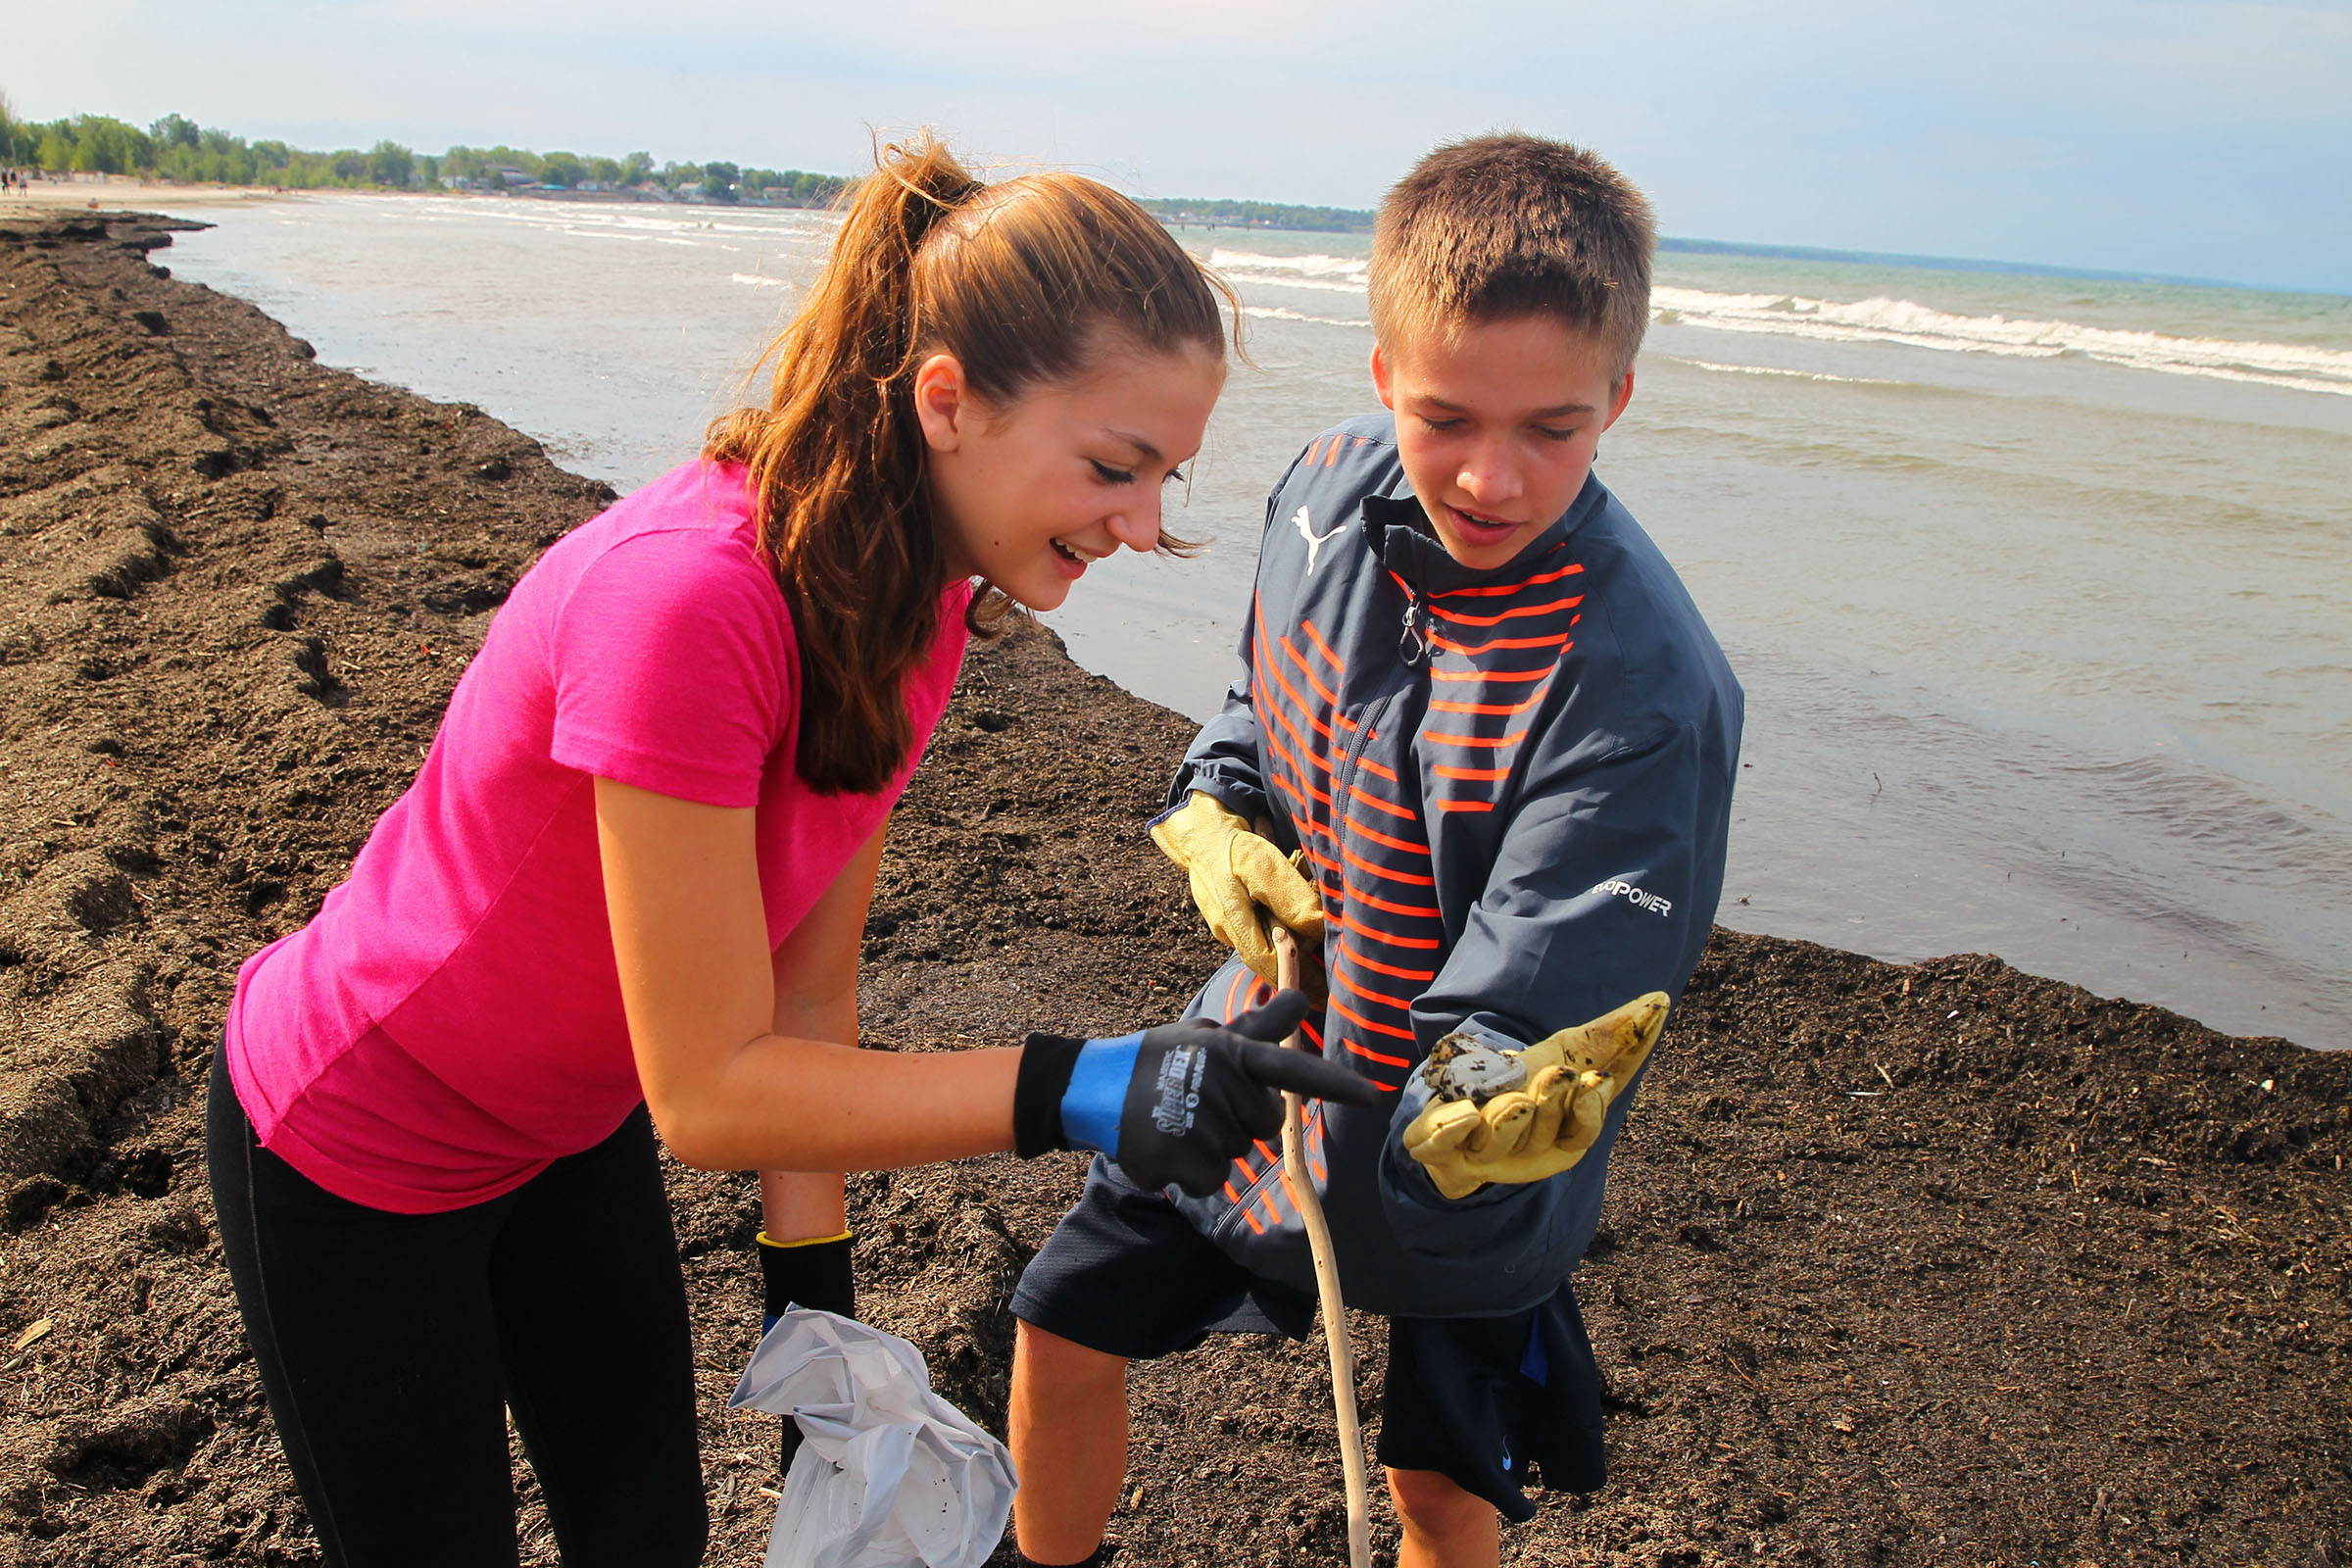 Josh Valentine, 14, right, and Madeline Venturo, 15, from Orchard Park Presbyterian Church look at plastic item he picked up as they volunteered at the 31st annual Great Lakes Beach Sweep helping clean up garbage, including plastic bottles, balloons, cigarette butts and other items from beacheson Saturday Sept. 17, 2016 at Woodlawn Beach State Park , in Blasdell, N.Y.. (John Hickey/Buffalo News)